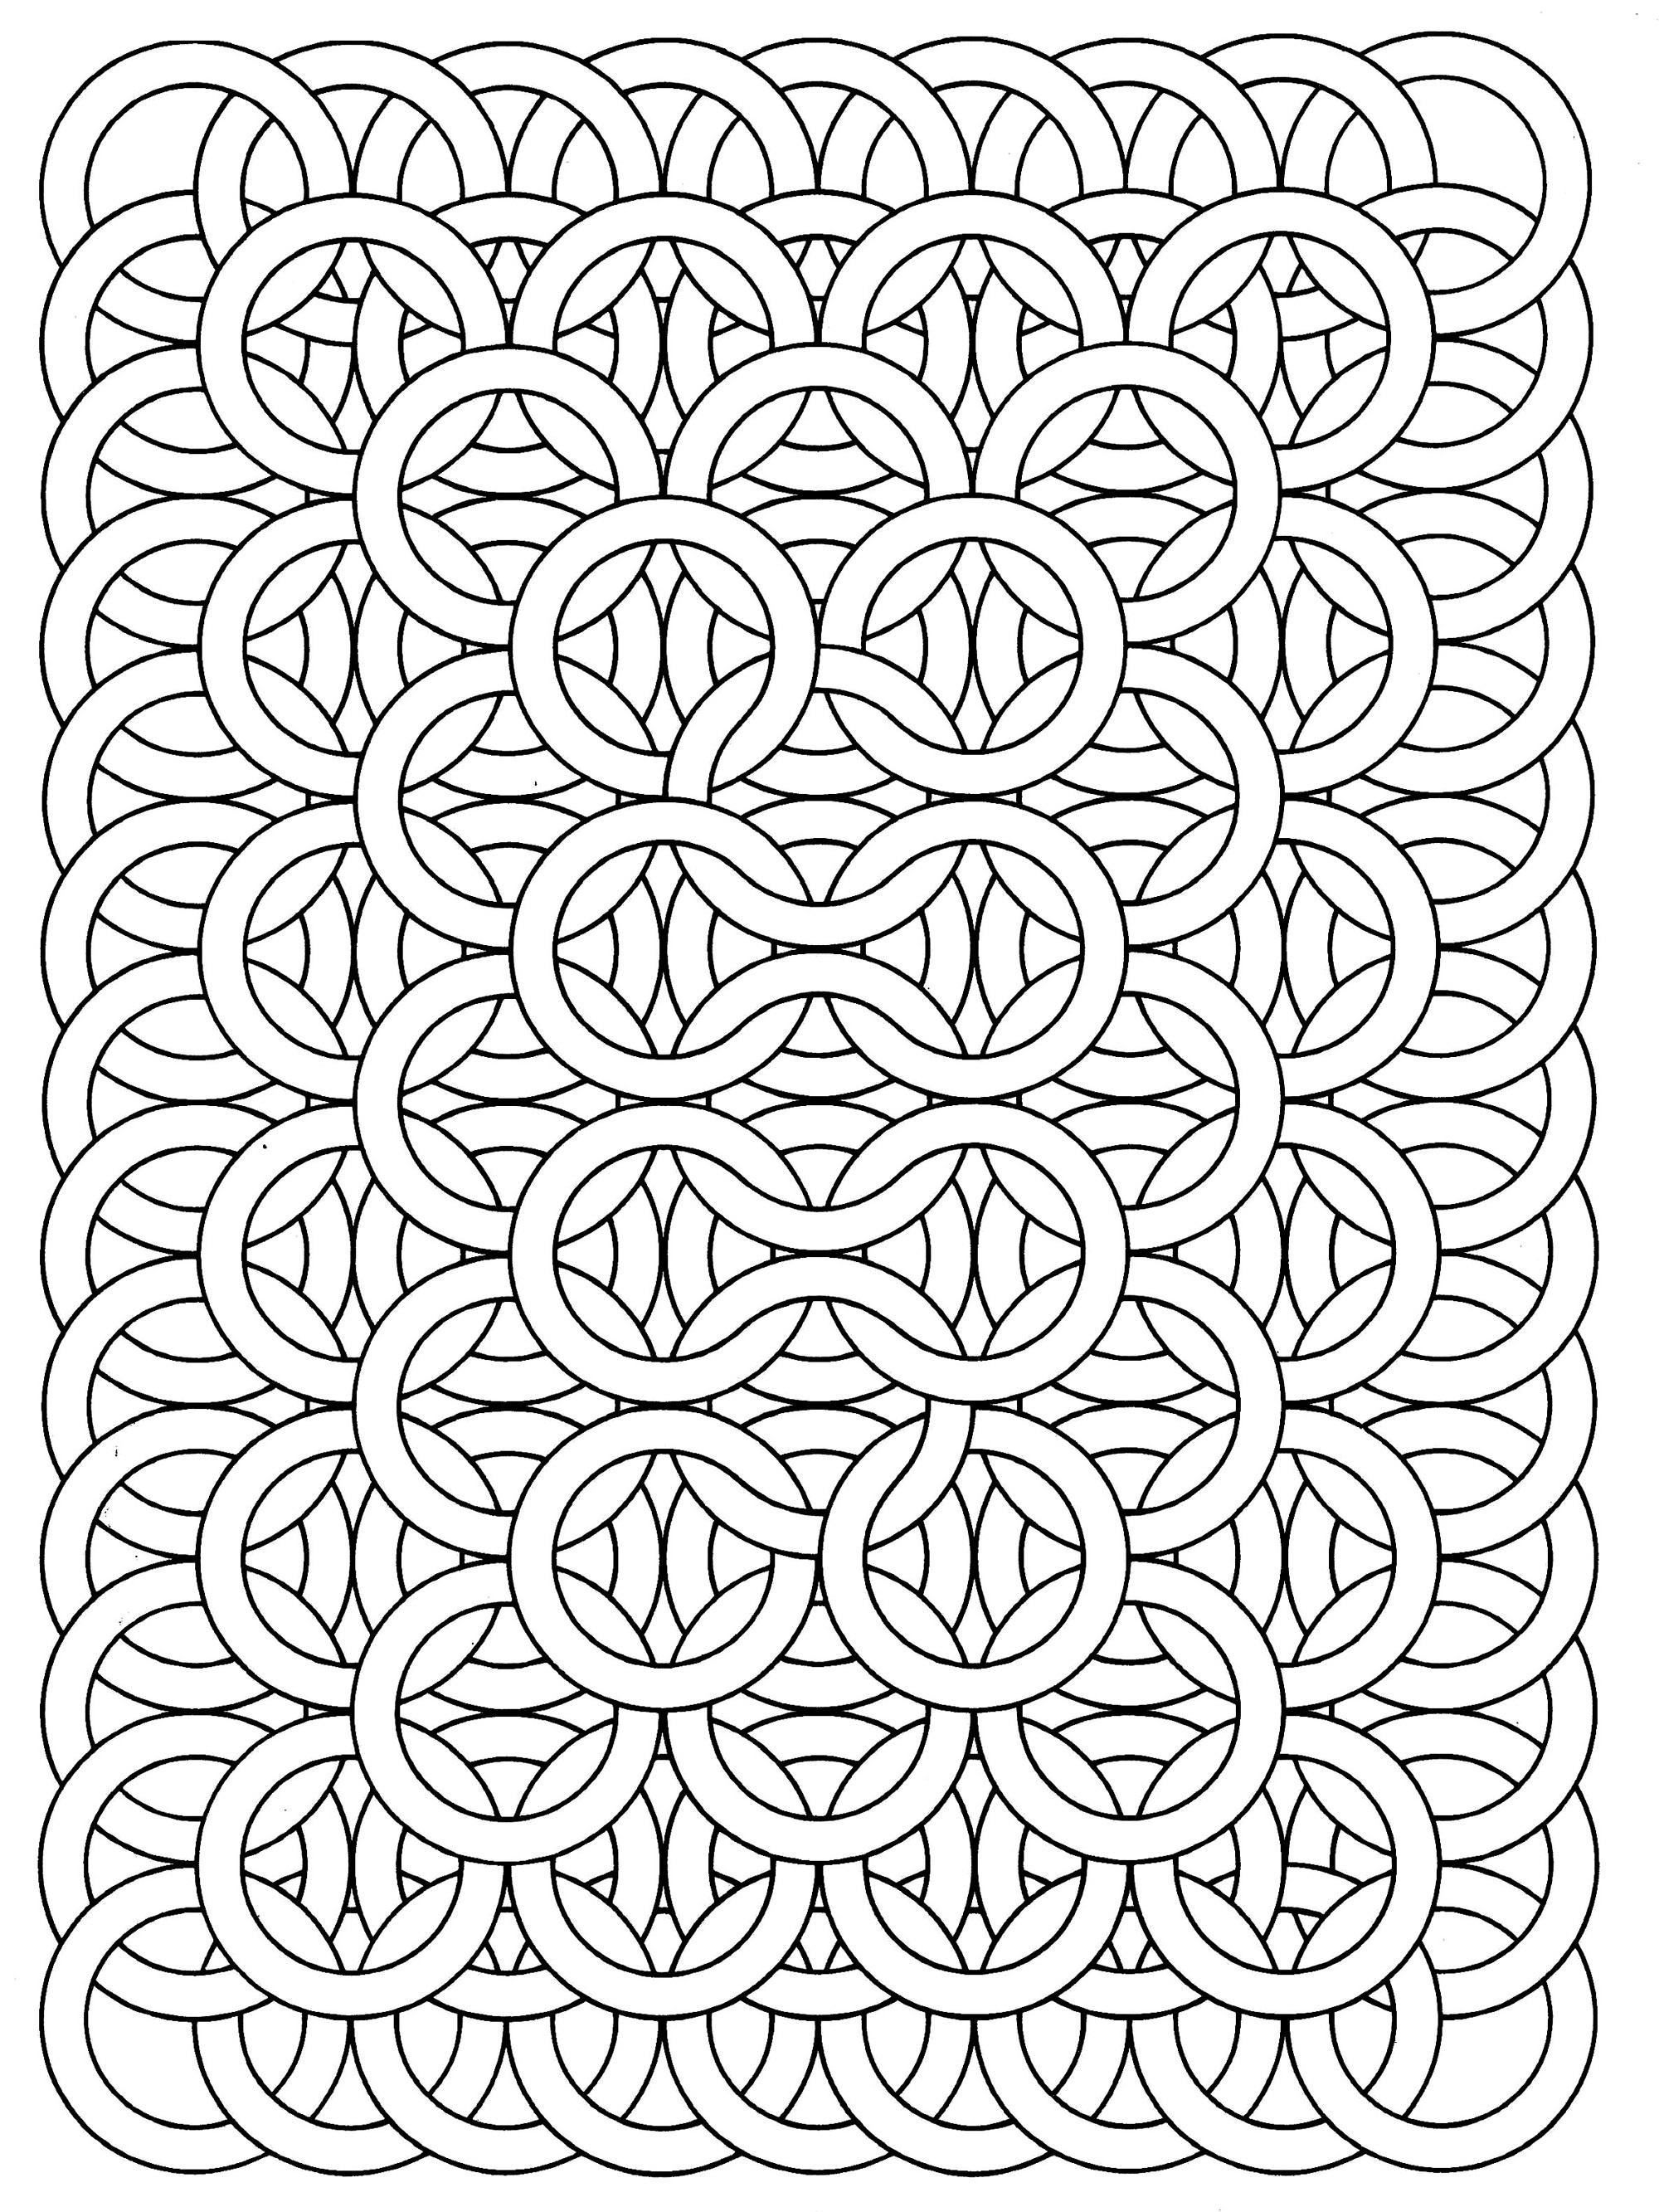 Best ideas about Easy Printable Coloring Pages For Adults . Save or Pin FREE Adult Coloring Pages Happiness is Homemade Now.